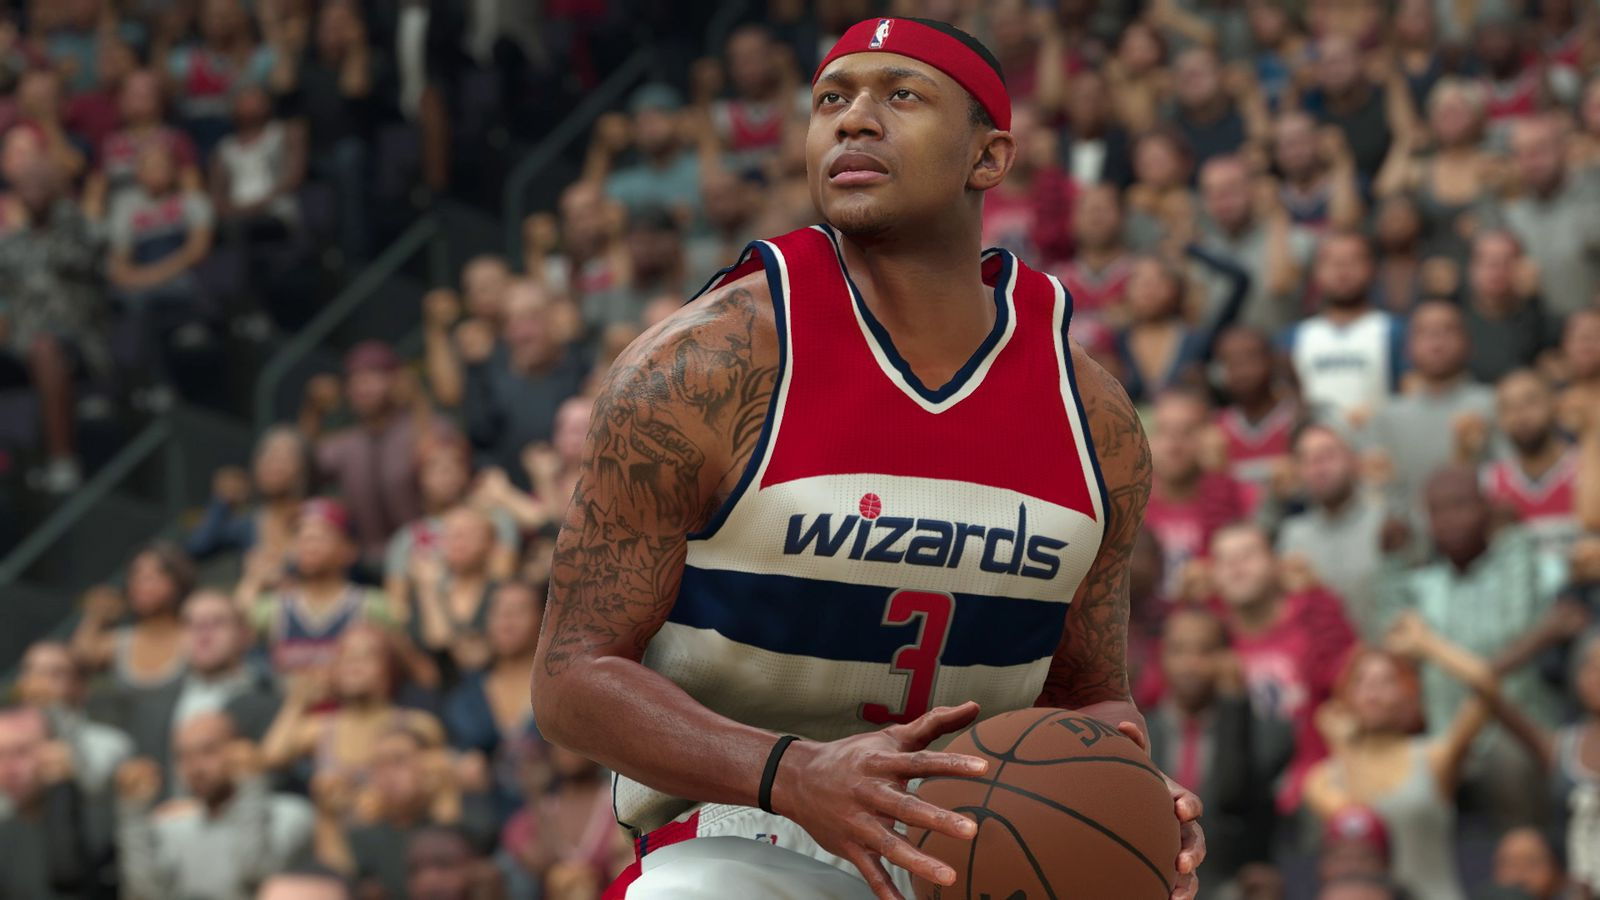 NBA 2K maker teaming up with NBA for esports league Polygon